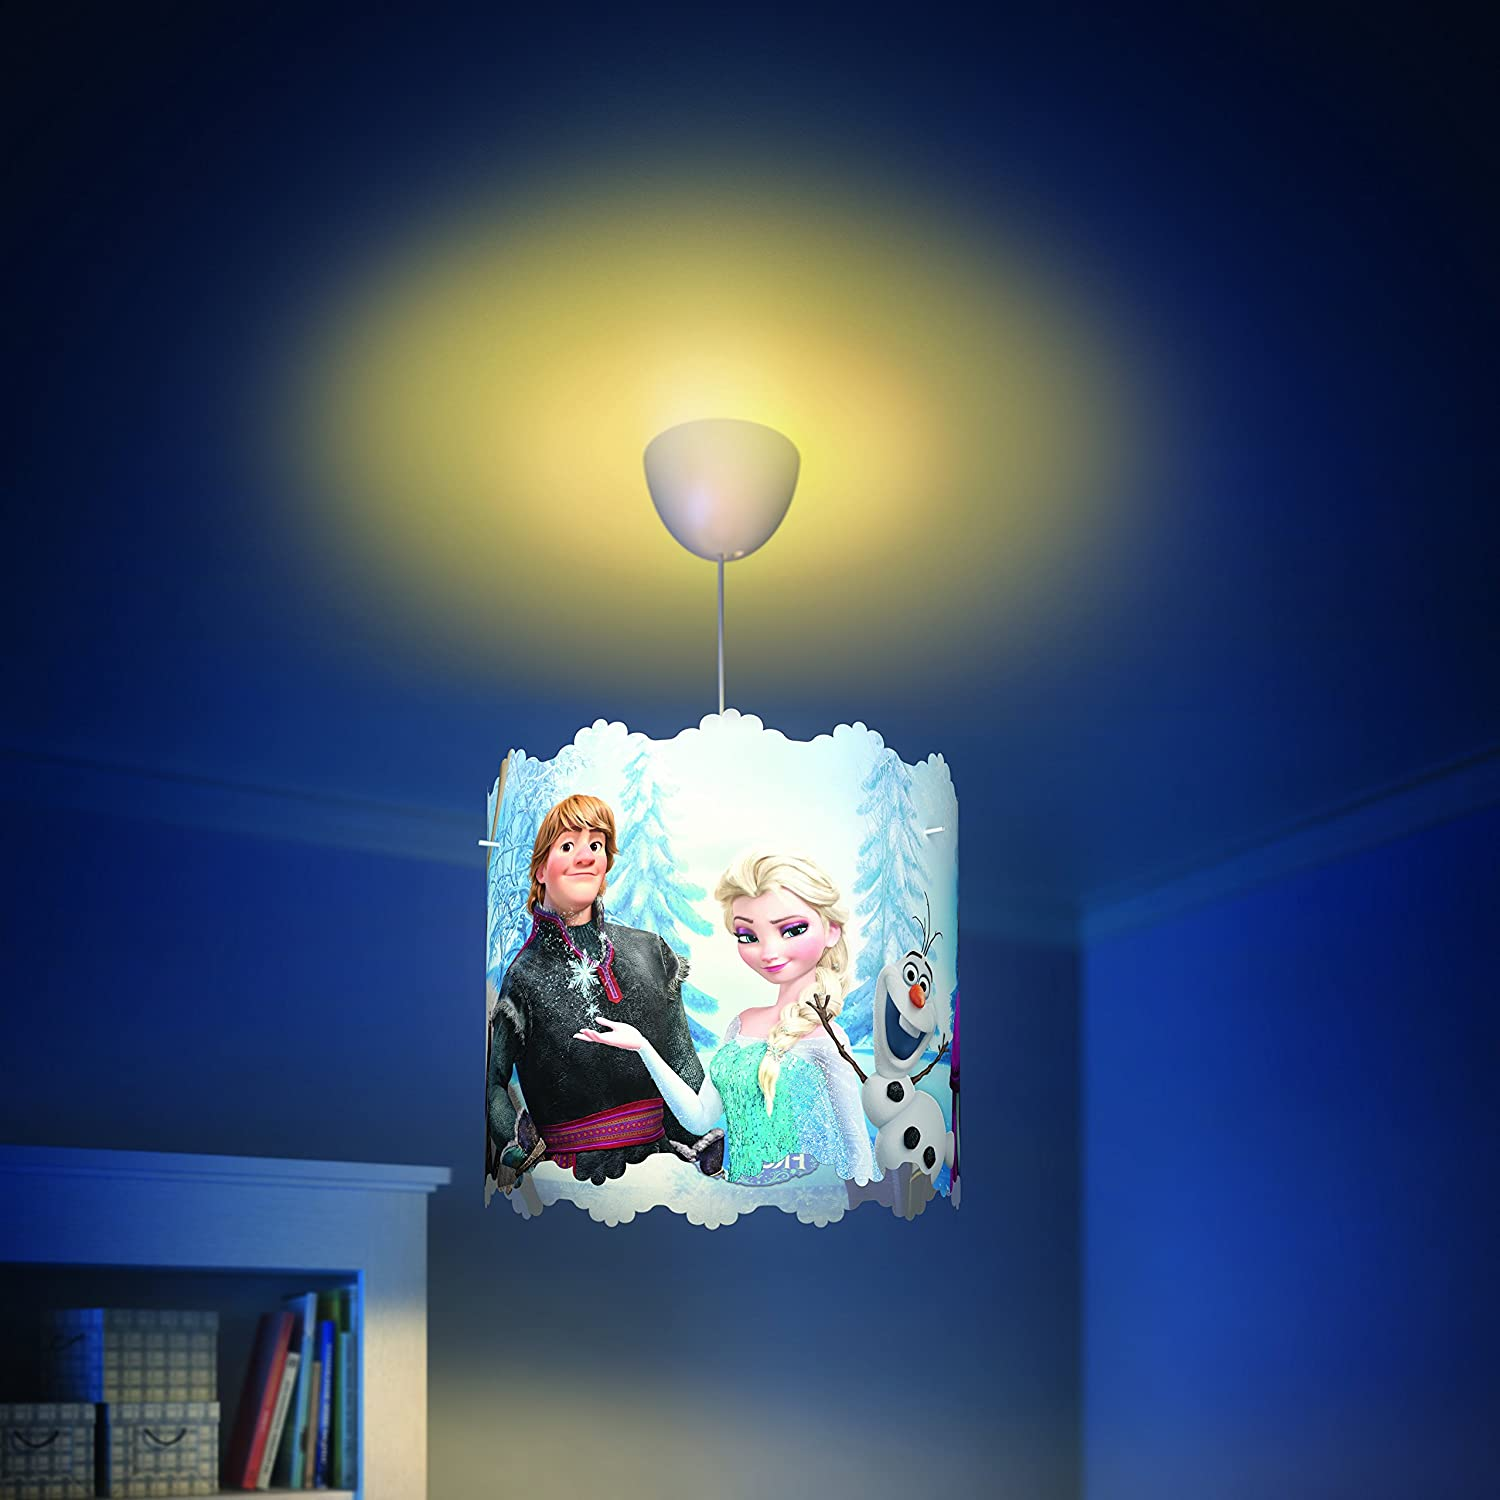 Philips Disney Suspension Lustre La Reine des Neiges Luminaire